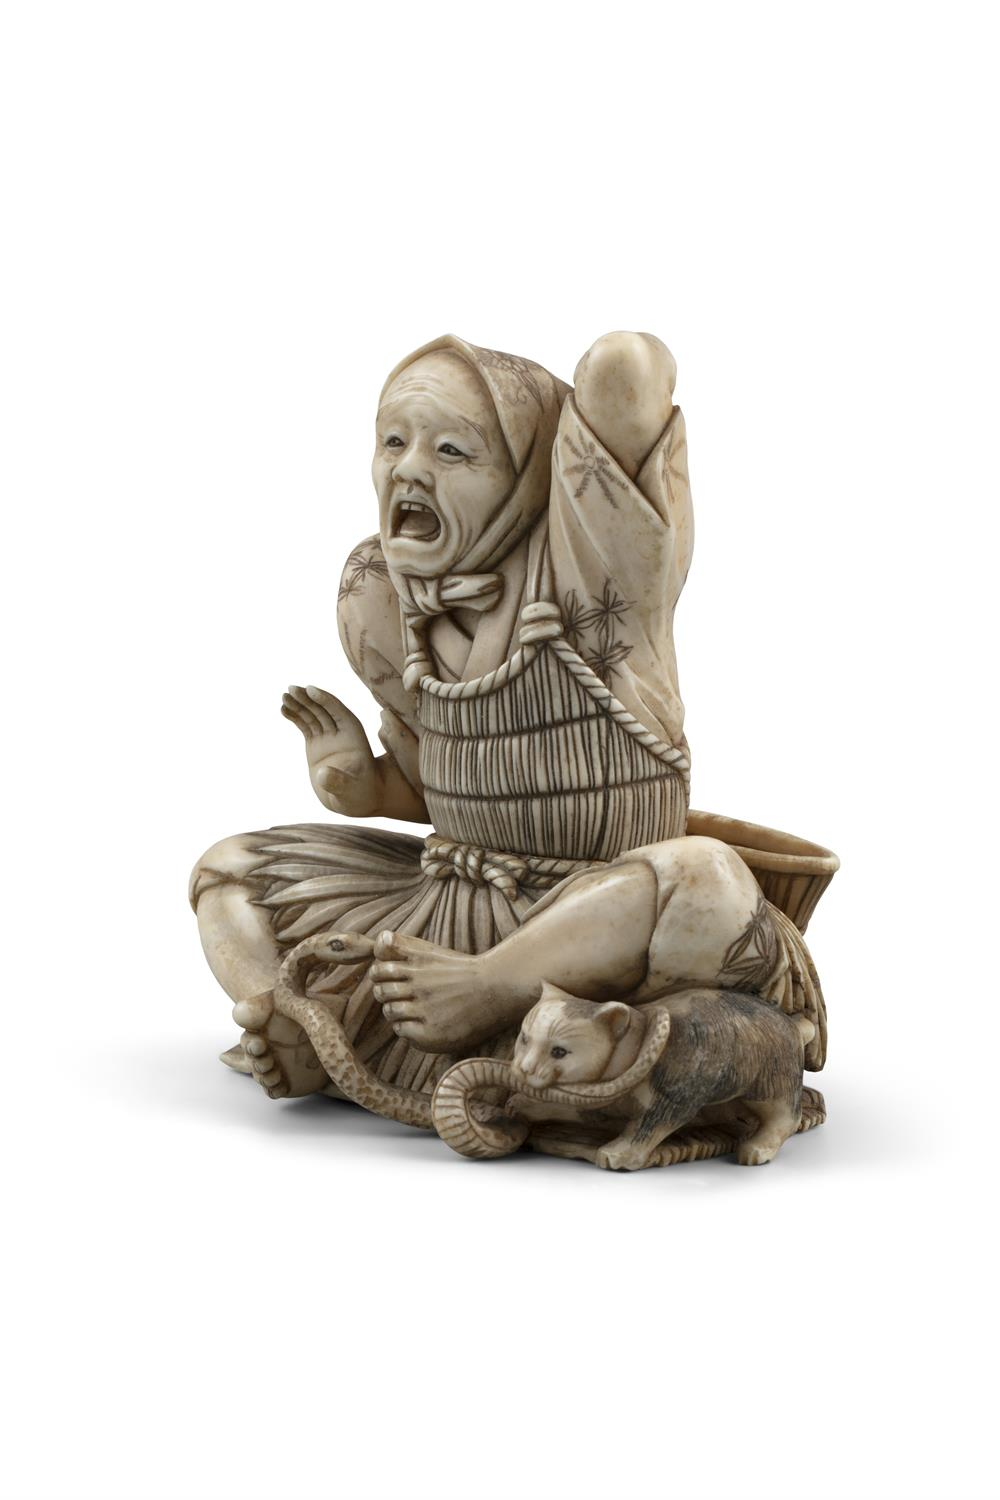 *MASAHIDE 正秀: A CARVED IVORY OKIMONO OF SCARED MAN WITH A CAT AND A SNAKE Japan, Meiji period, - Image 10 of 14